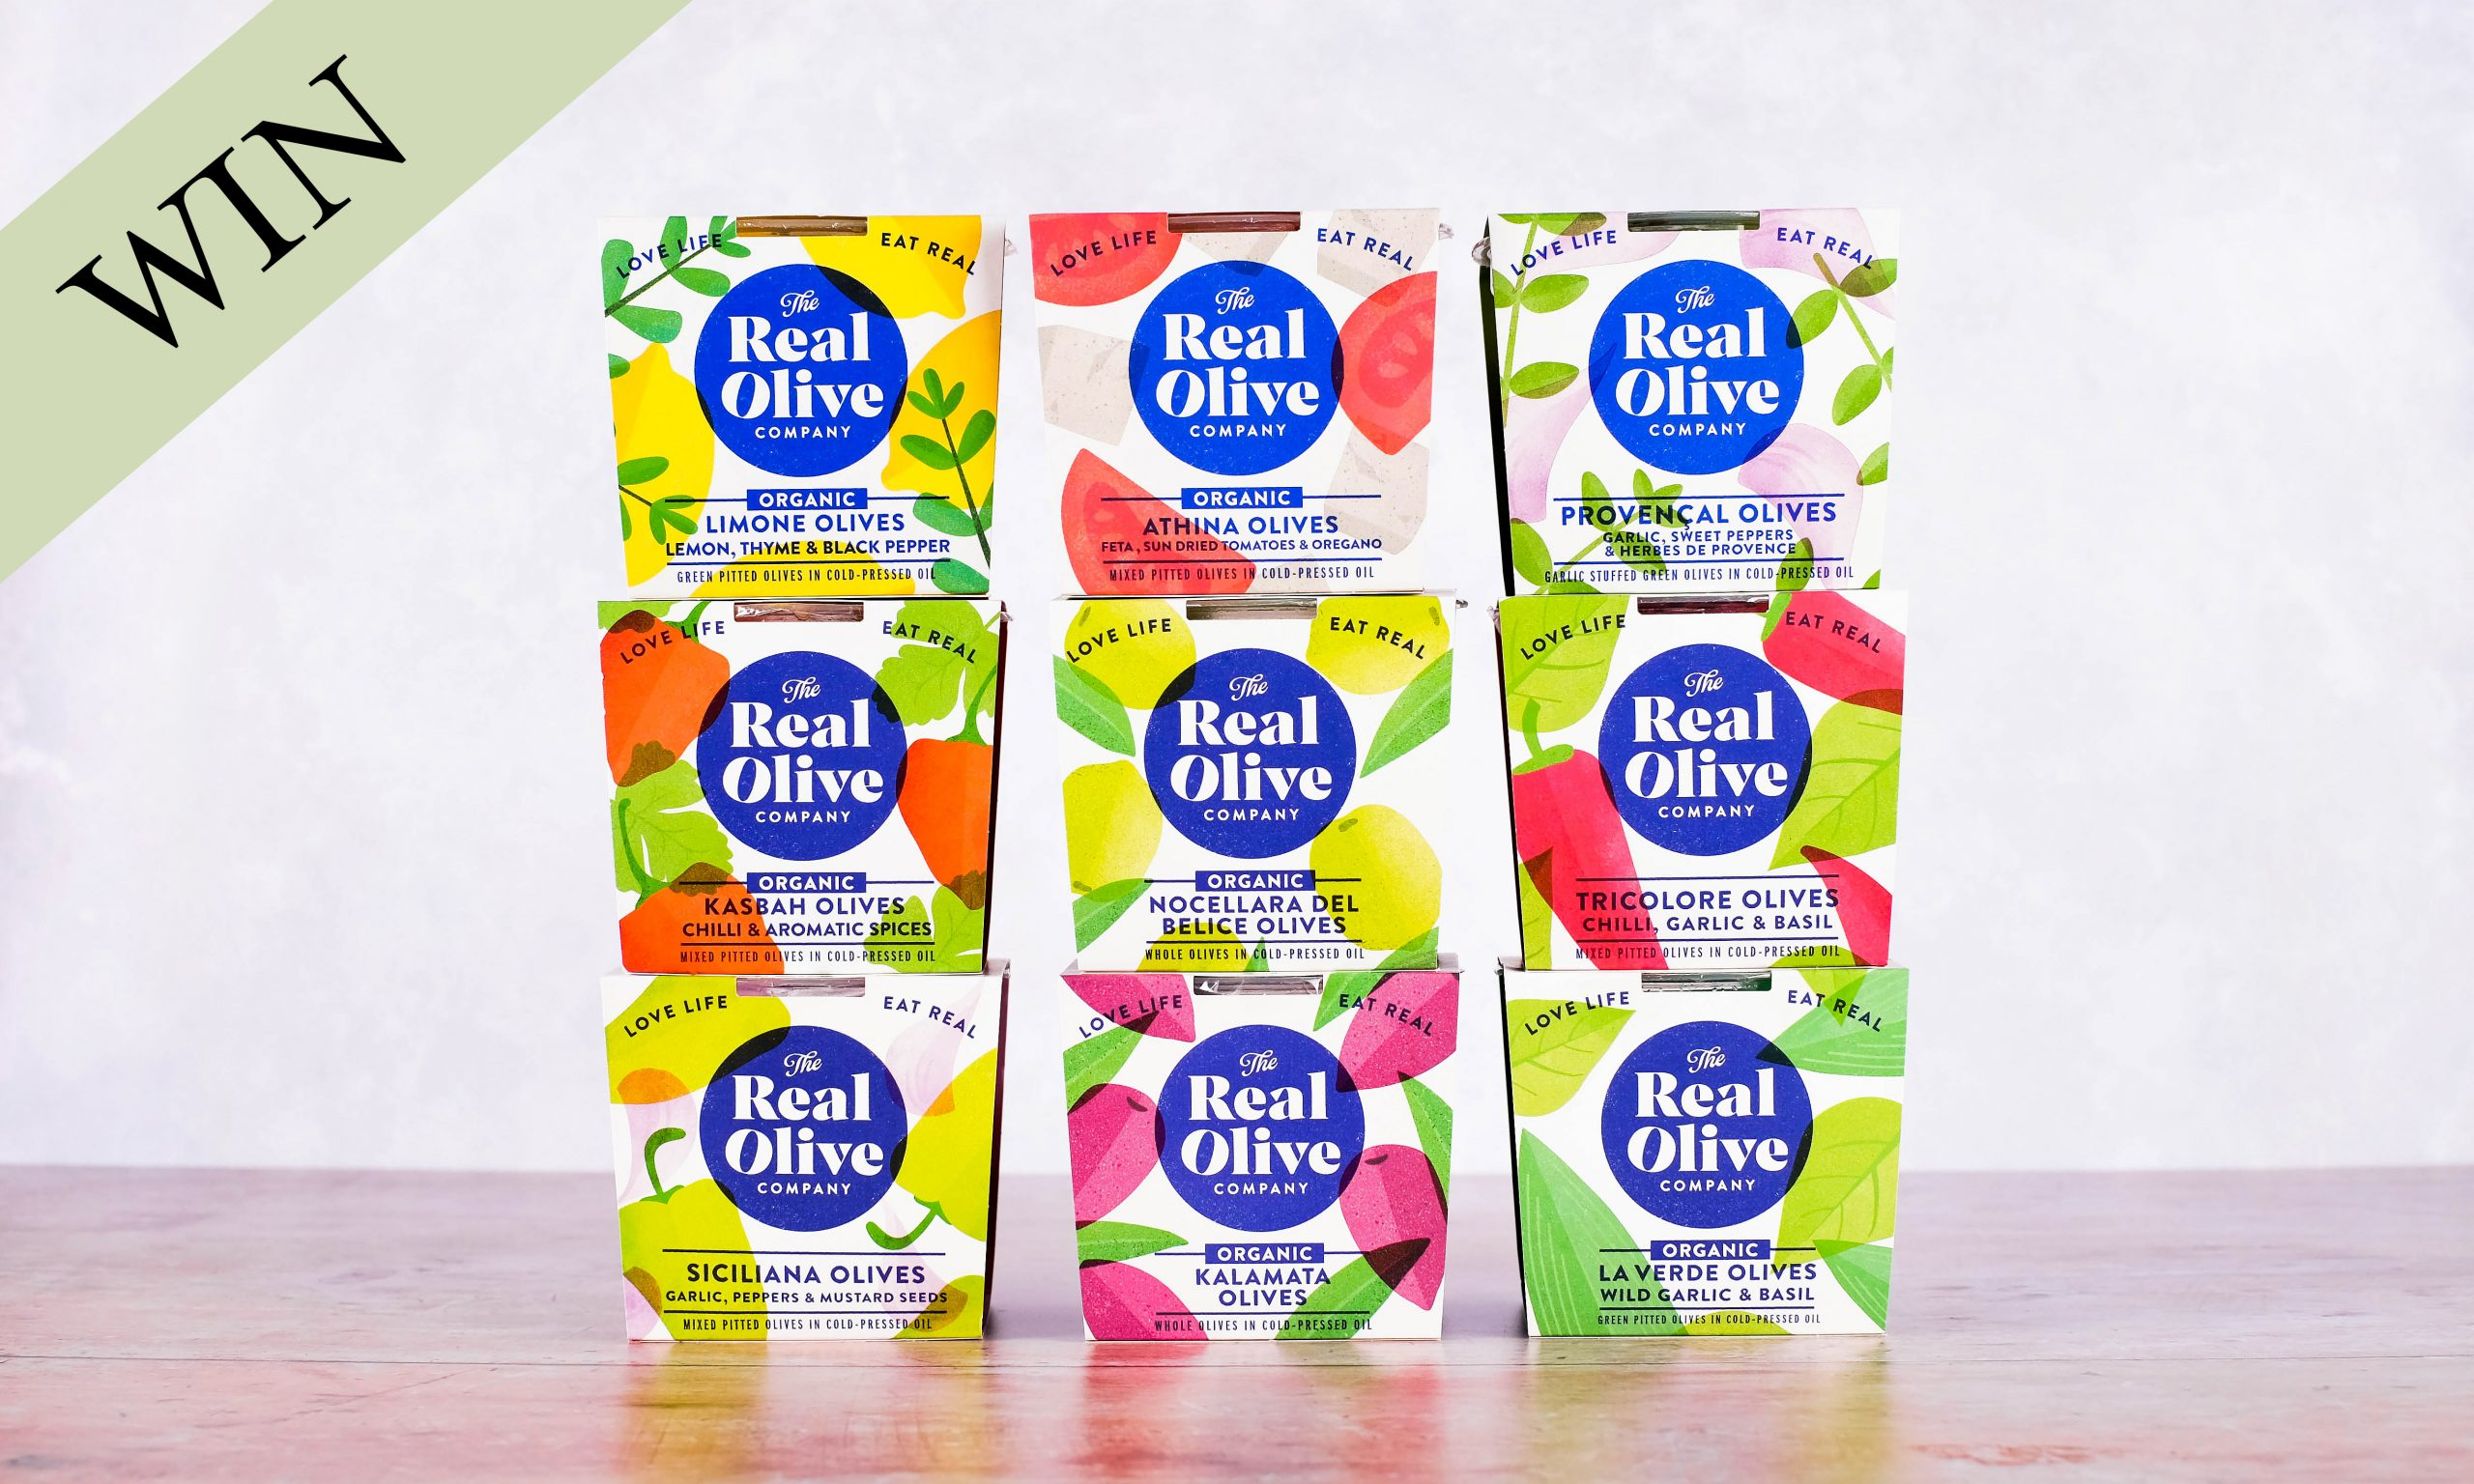 The Real Olive Company Competition